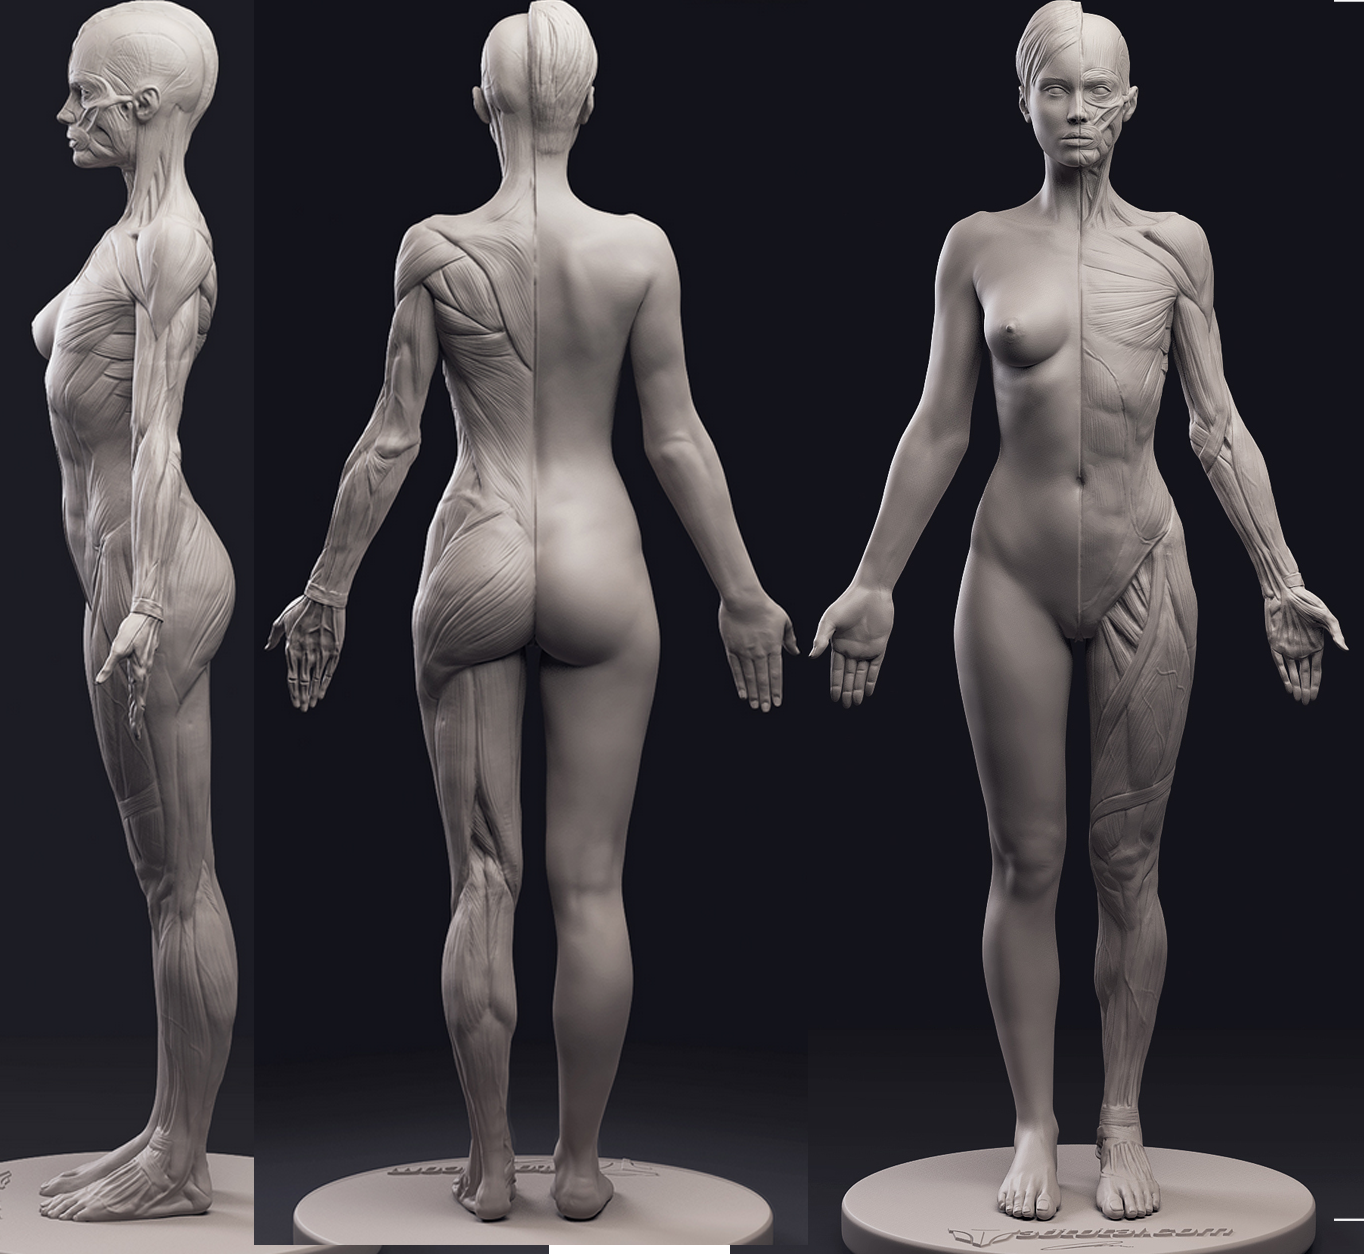 Pin By Jose Soto On Physical Sculpture In 2019 Pinterest Zbrush